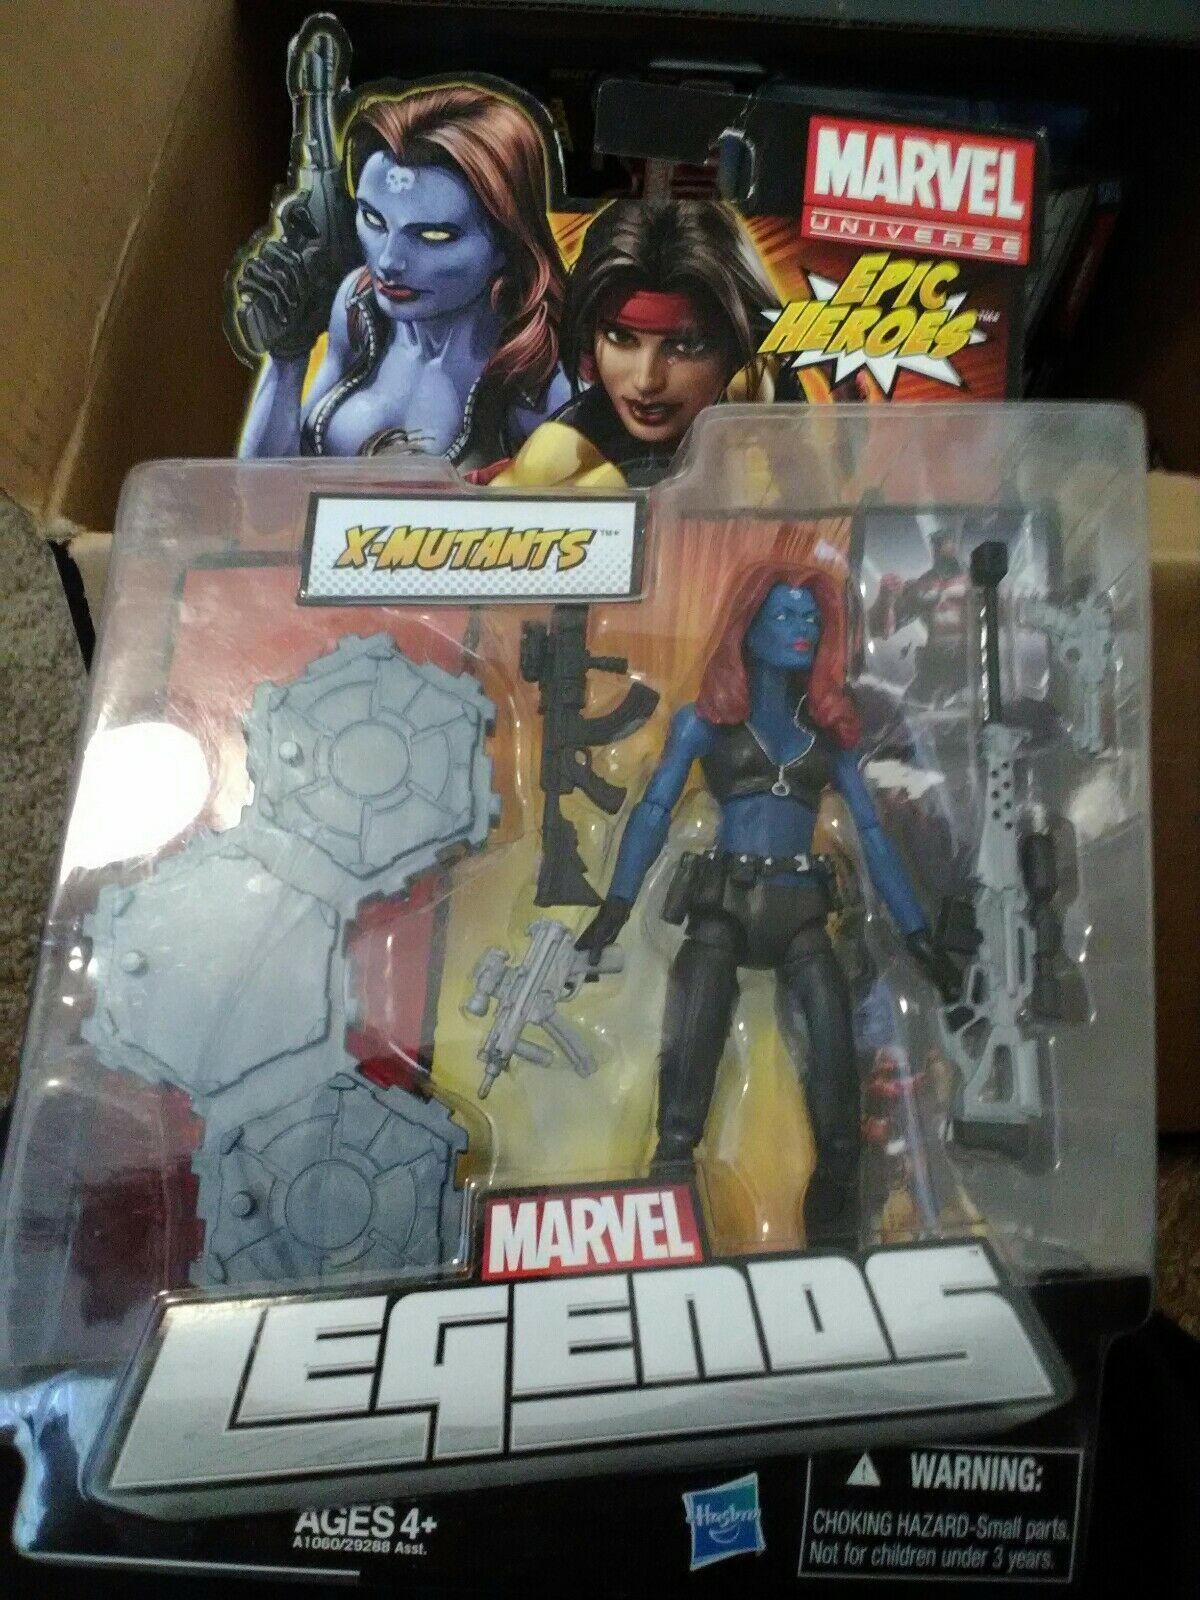 Marvel - legenden epischen helden serie mystique rabe x-mutants